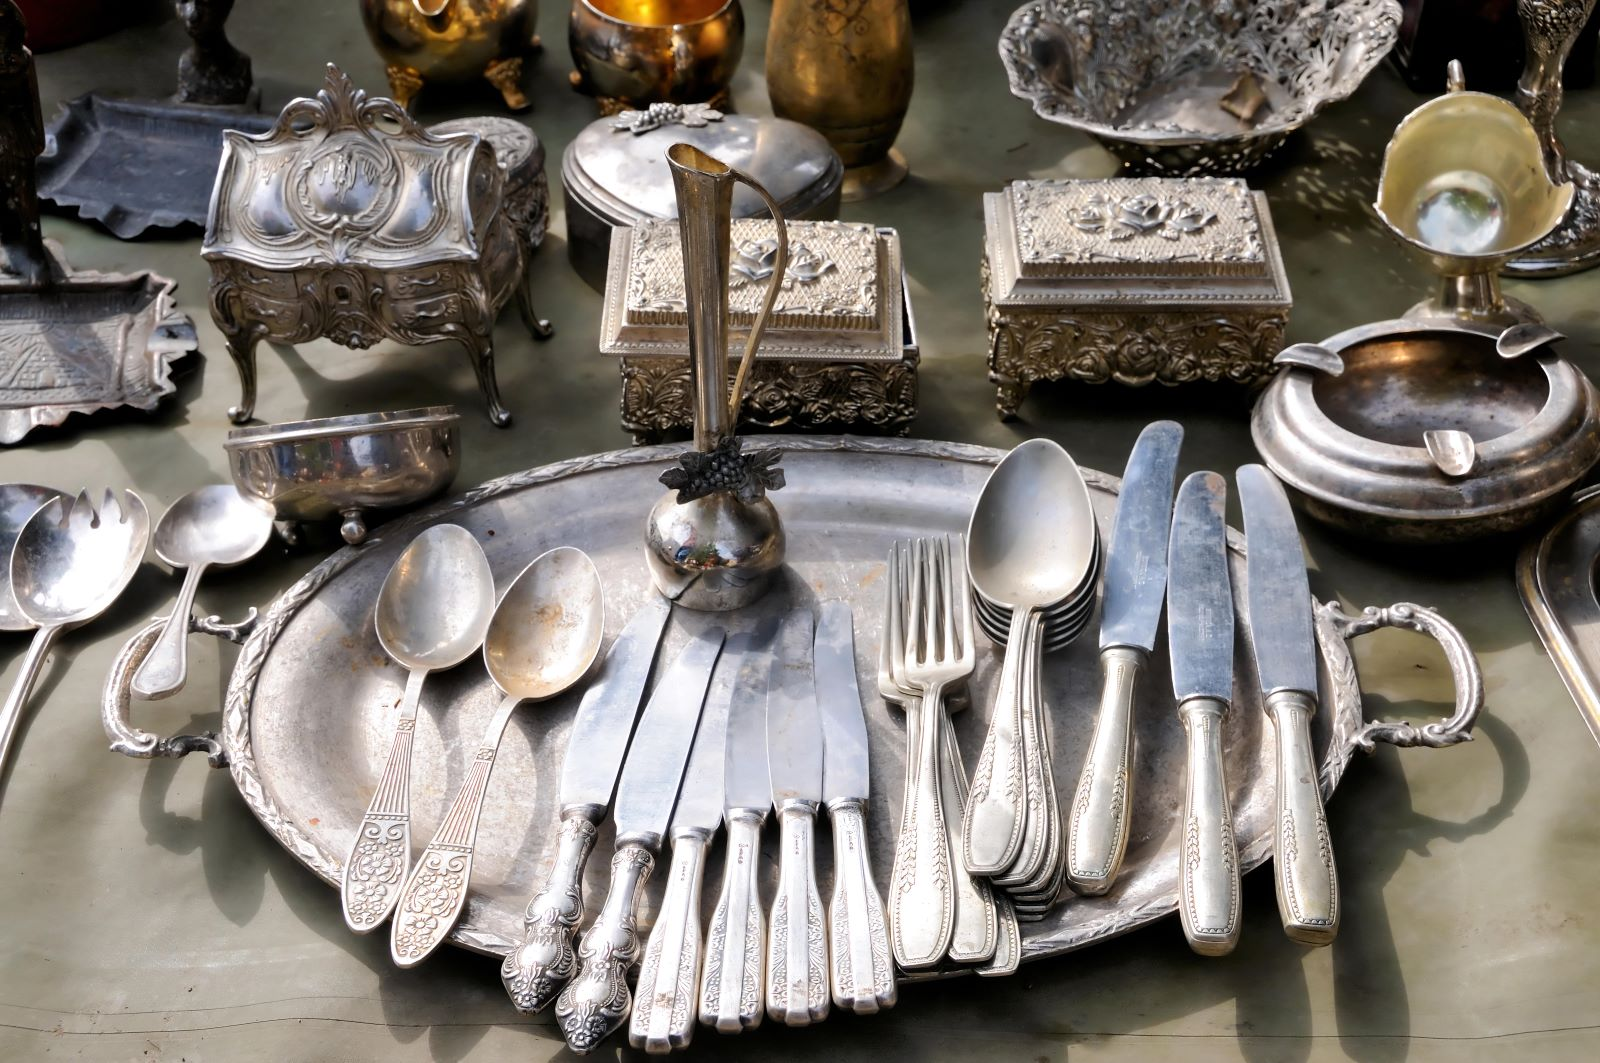 Silver cutlery and caskets